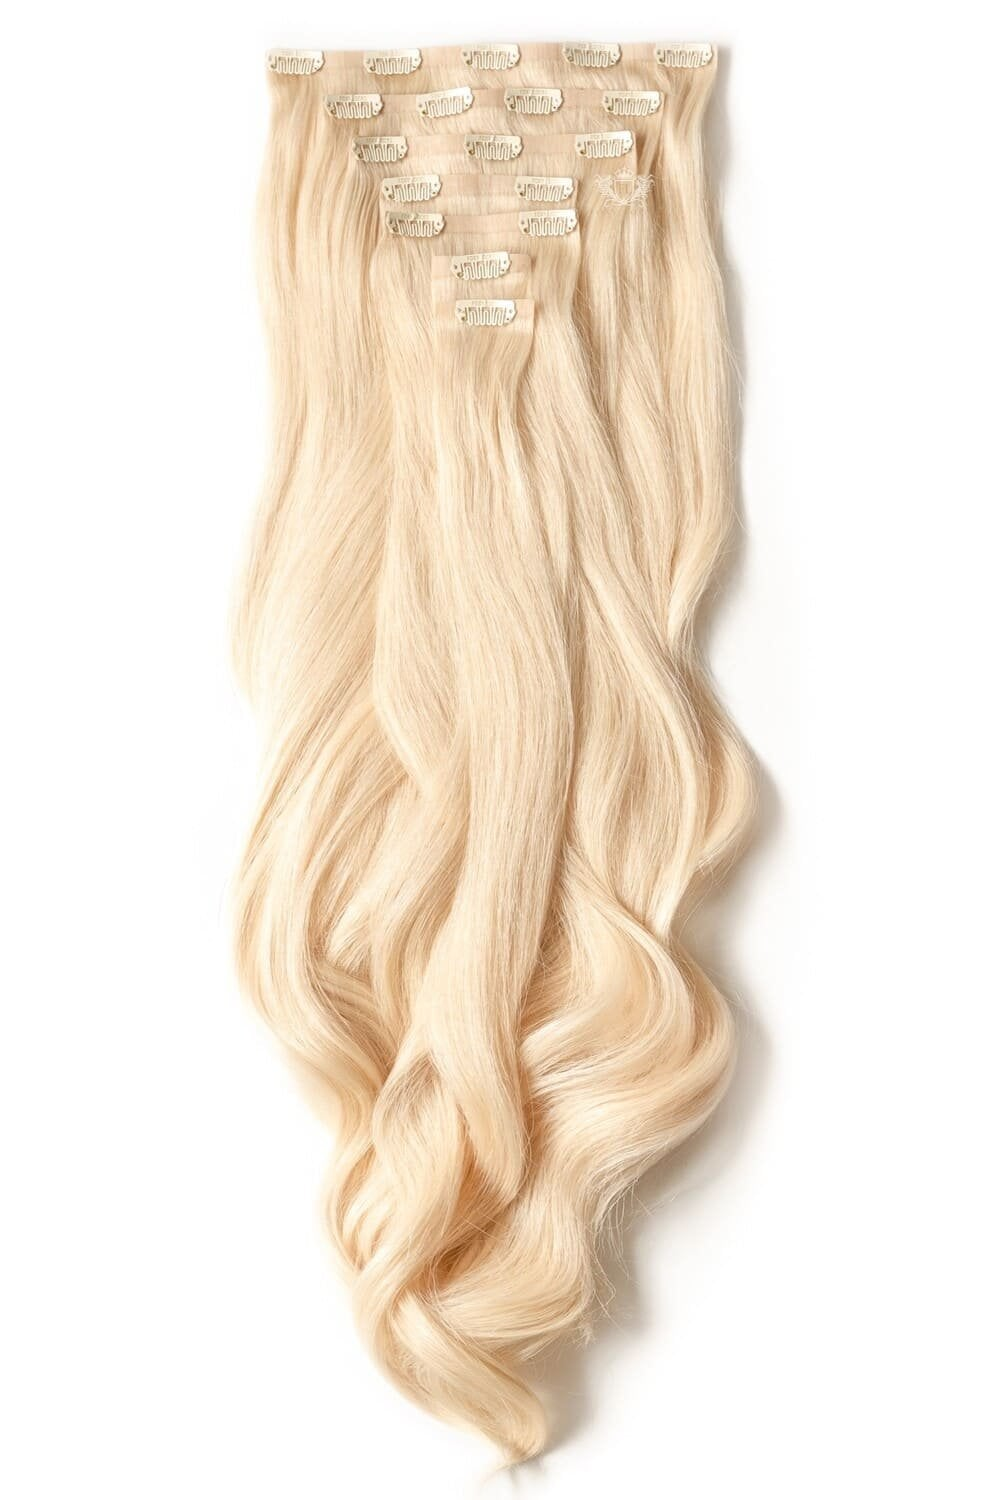 Hollywood Luxurious Seamless 24 Clip In Human Hair Extensions 280g